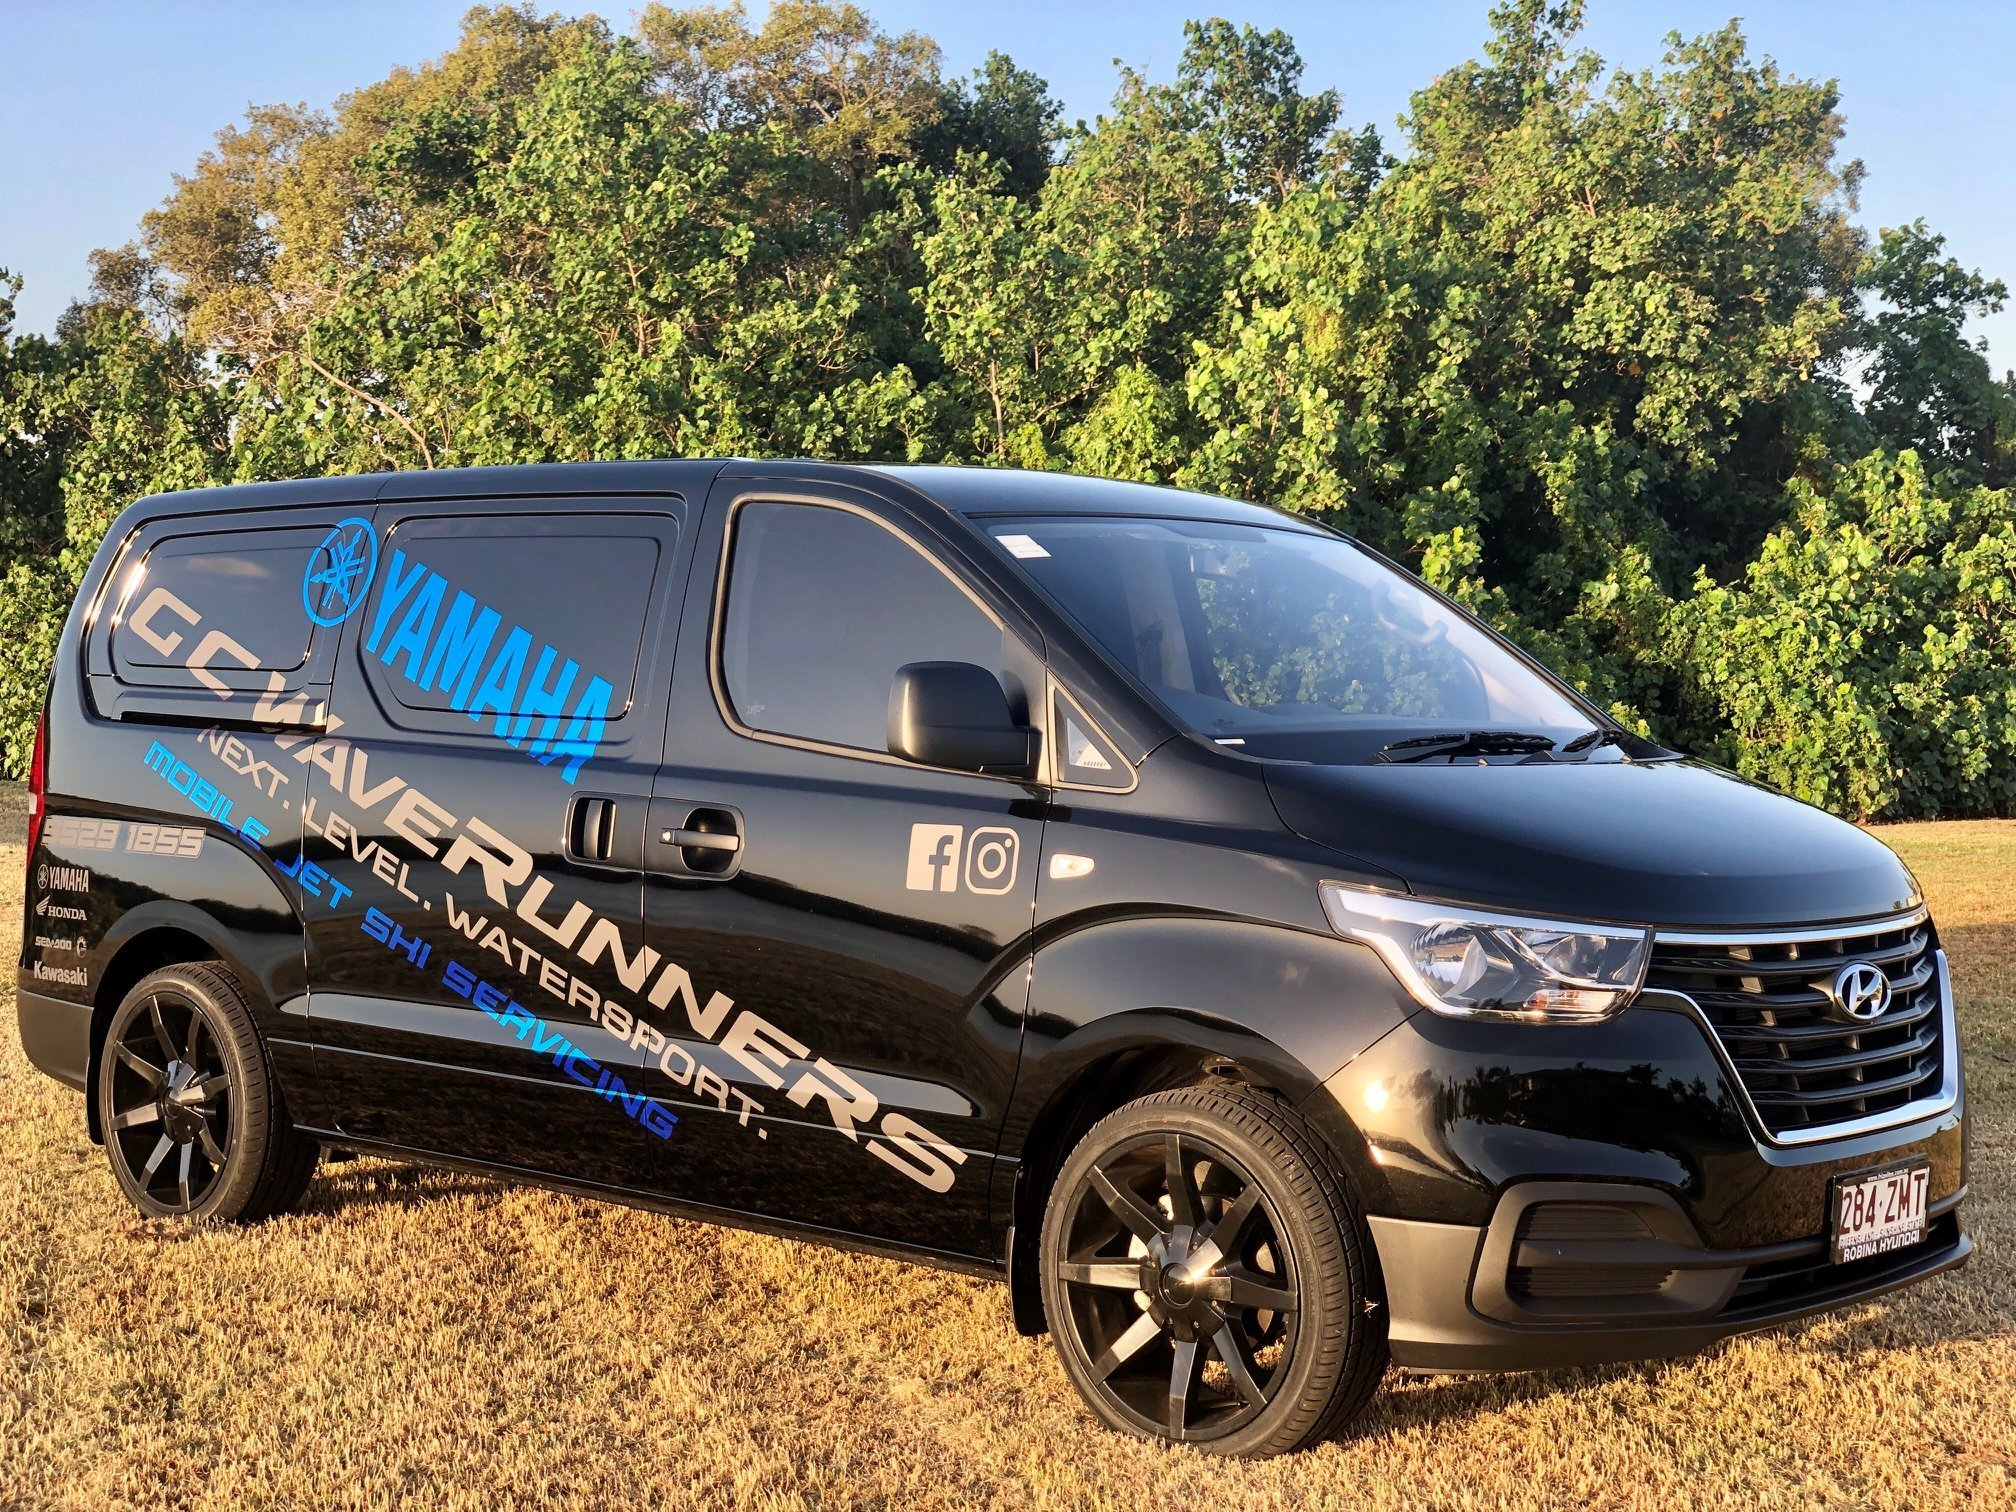 GC Waverunners Mobile showroom services